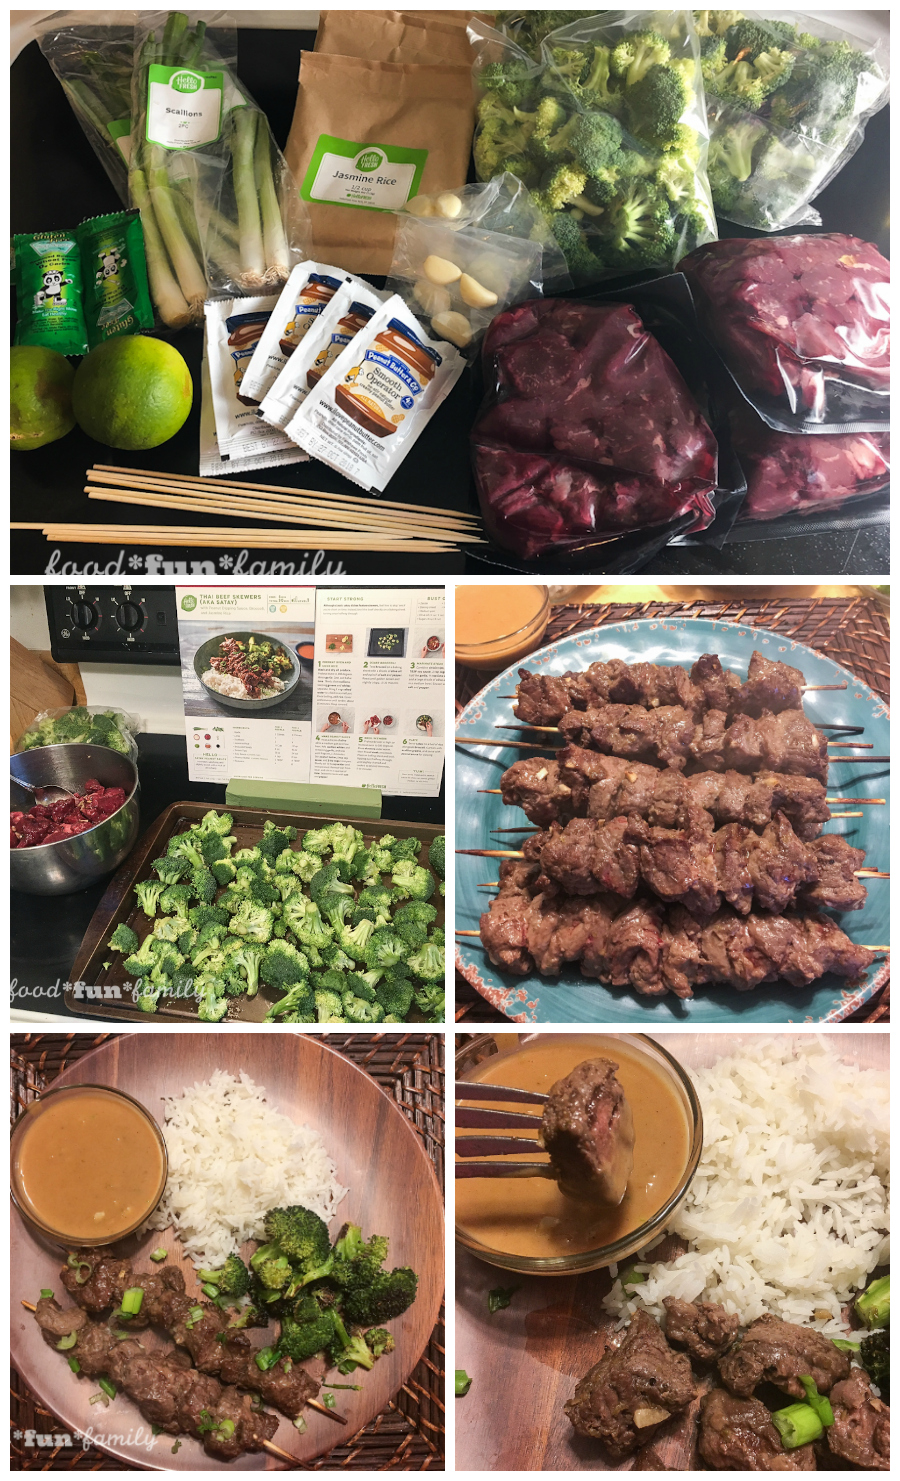 Our experience with HelloFresh Meal Kit Delivery (plus coupon code for $35 off your first box!)